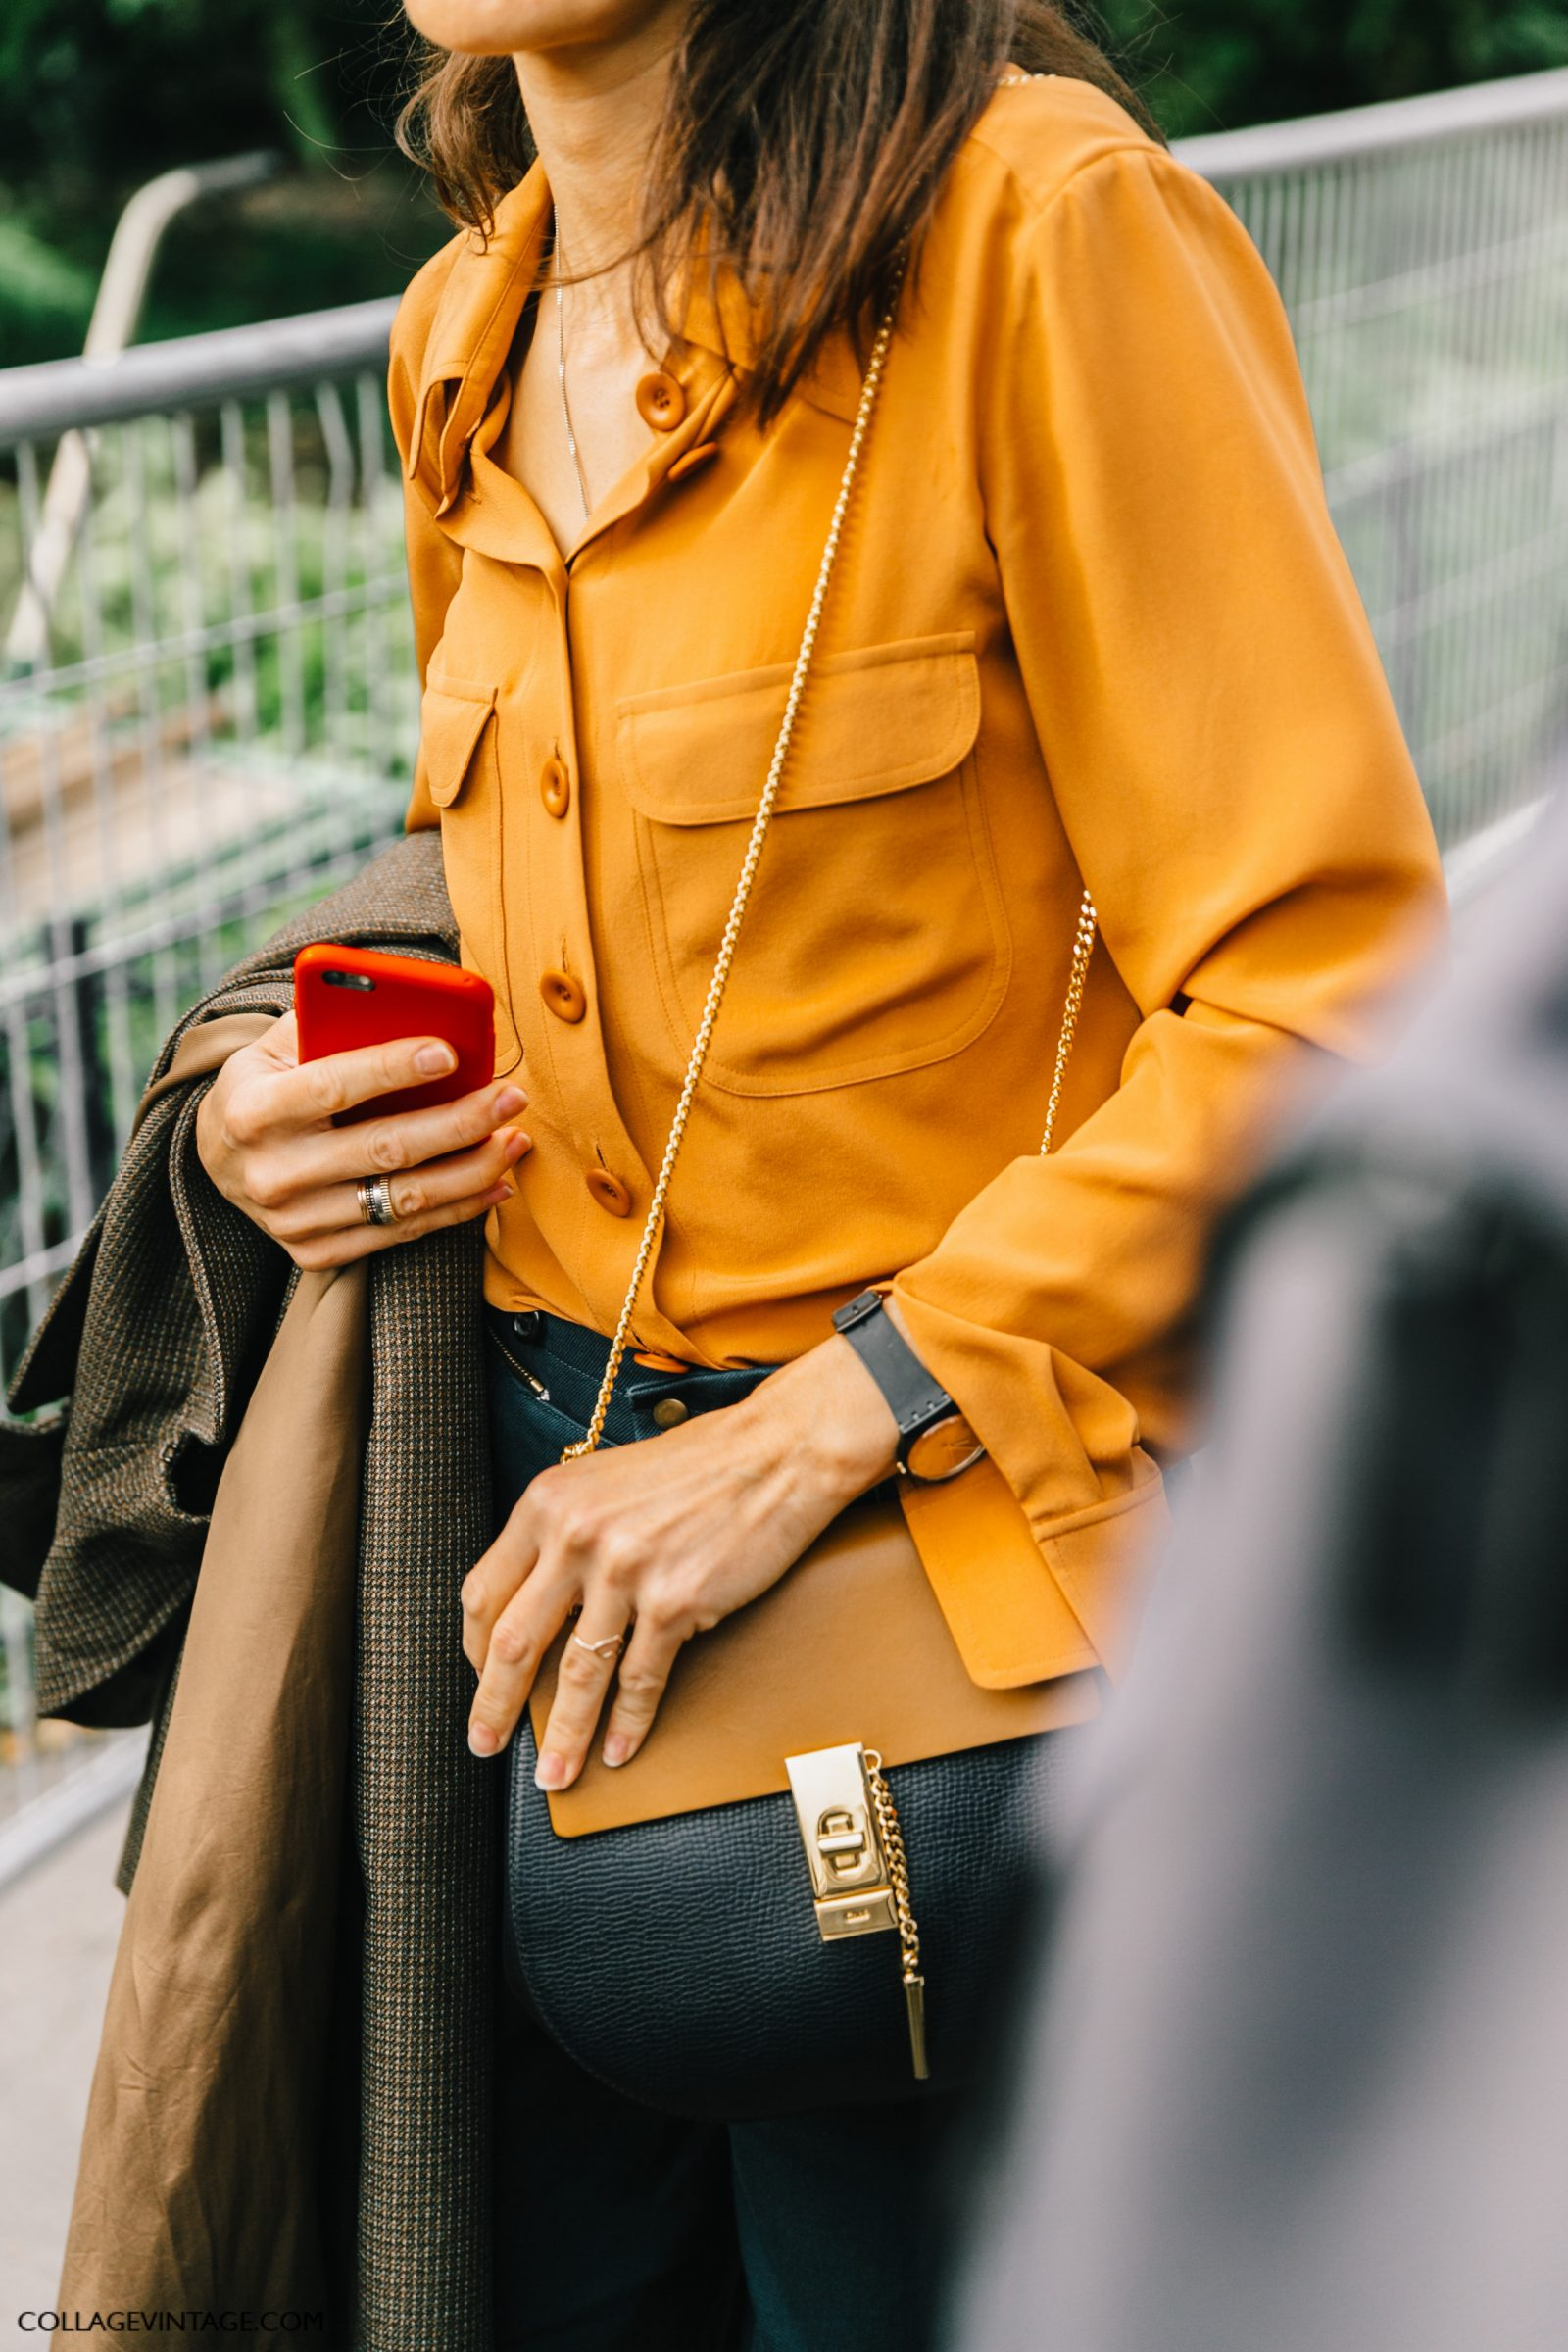 pfw-paris_fashion_week_ss17-street_style-outfits-collage_vintage-chloe-carven-balmain-barbara_bui-12